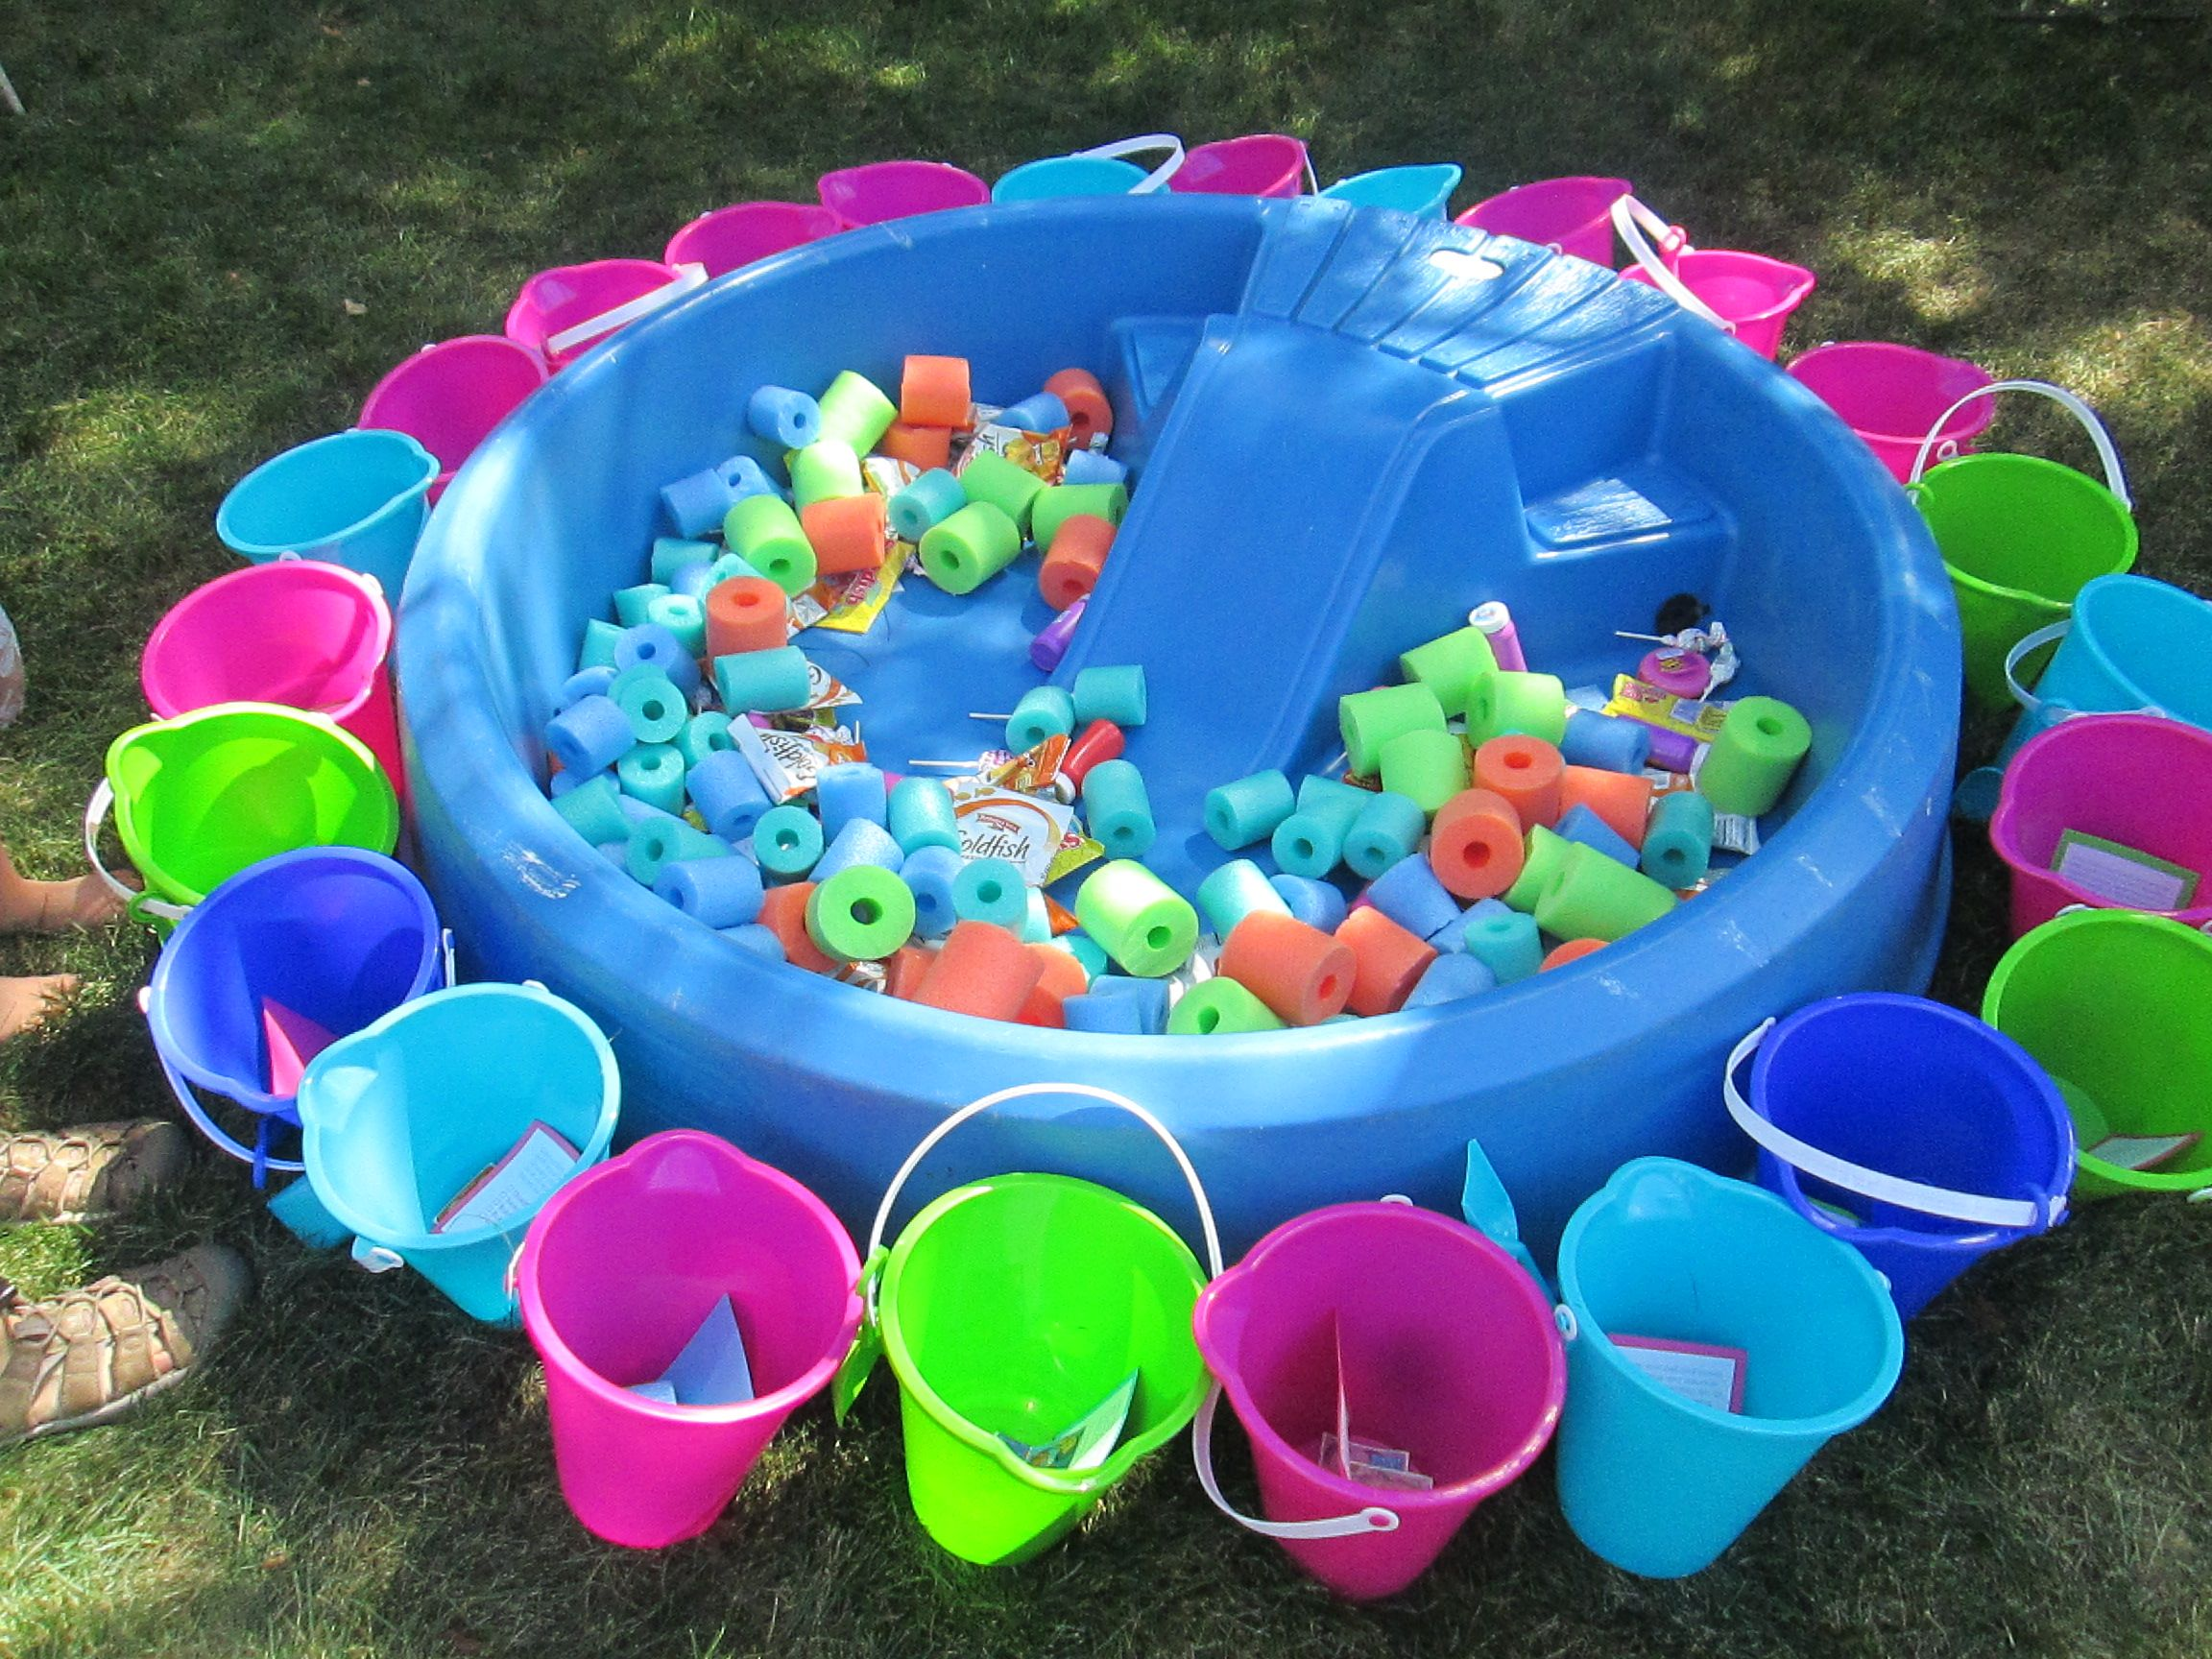 Pool Party Ideas For Kids mini beach balls and sunglasses are a must for this colorful pool party via karas party Pool Party Kids Ideas 8 Pool Party Favors Kids Will Love Fun Pool Birthday Party Favor